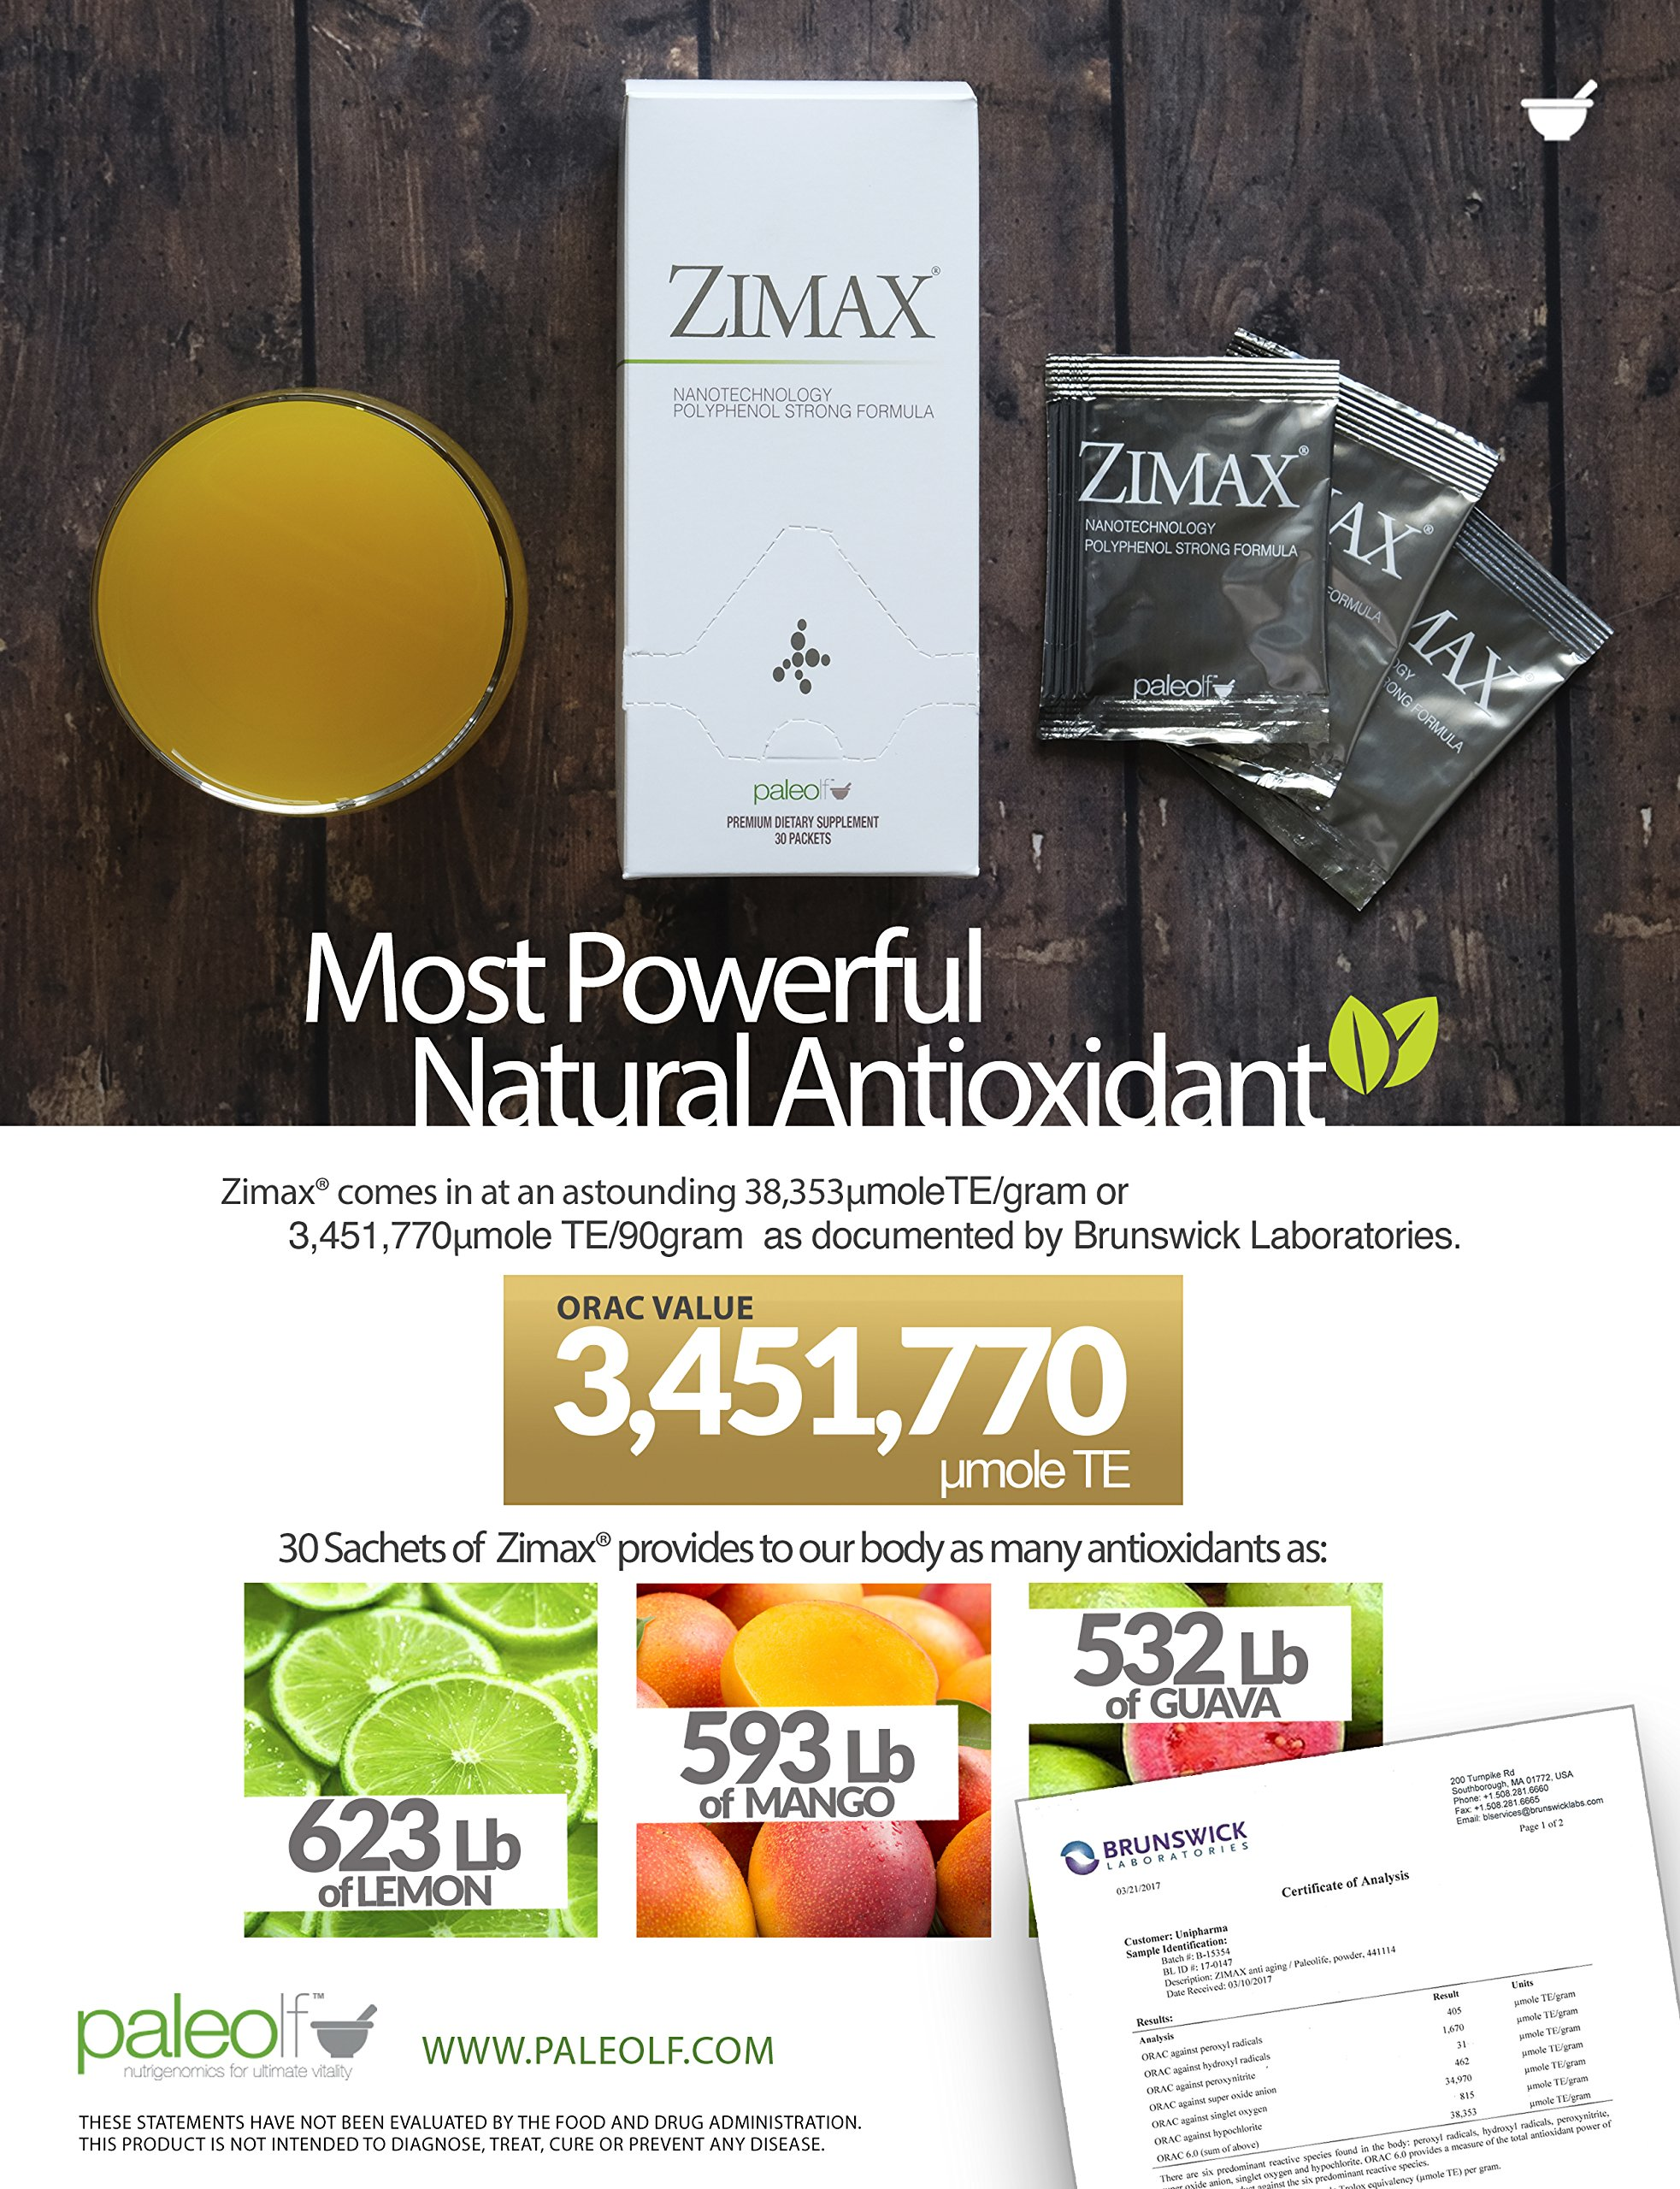 Zimax Super Antioxidant 100% Natural High Absorption Curcumin, Rosemary Extract, Grape Seed Extract, Olive Leaf Extract ORAC 3,451,770 (Sachet) by Paleolf (Image #4)